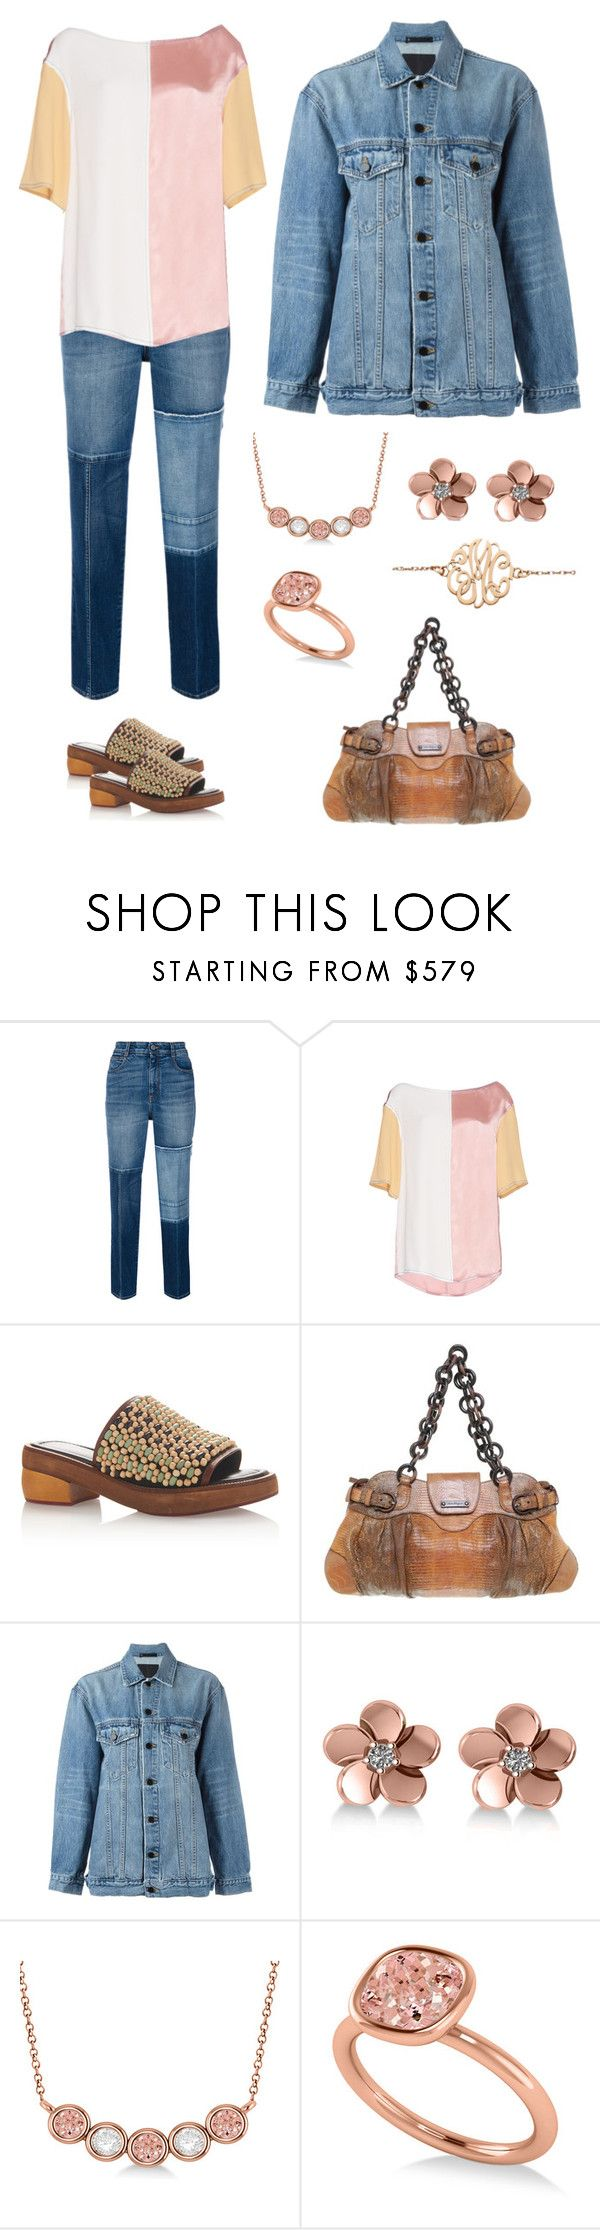 """Meeting Friends for Pizza and a Beer"" by karen-galves on Polyvore featuring STELLA McCARTNEY, Salvatore Ferragamo, Alexander Wang and Allurez"